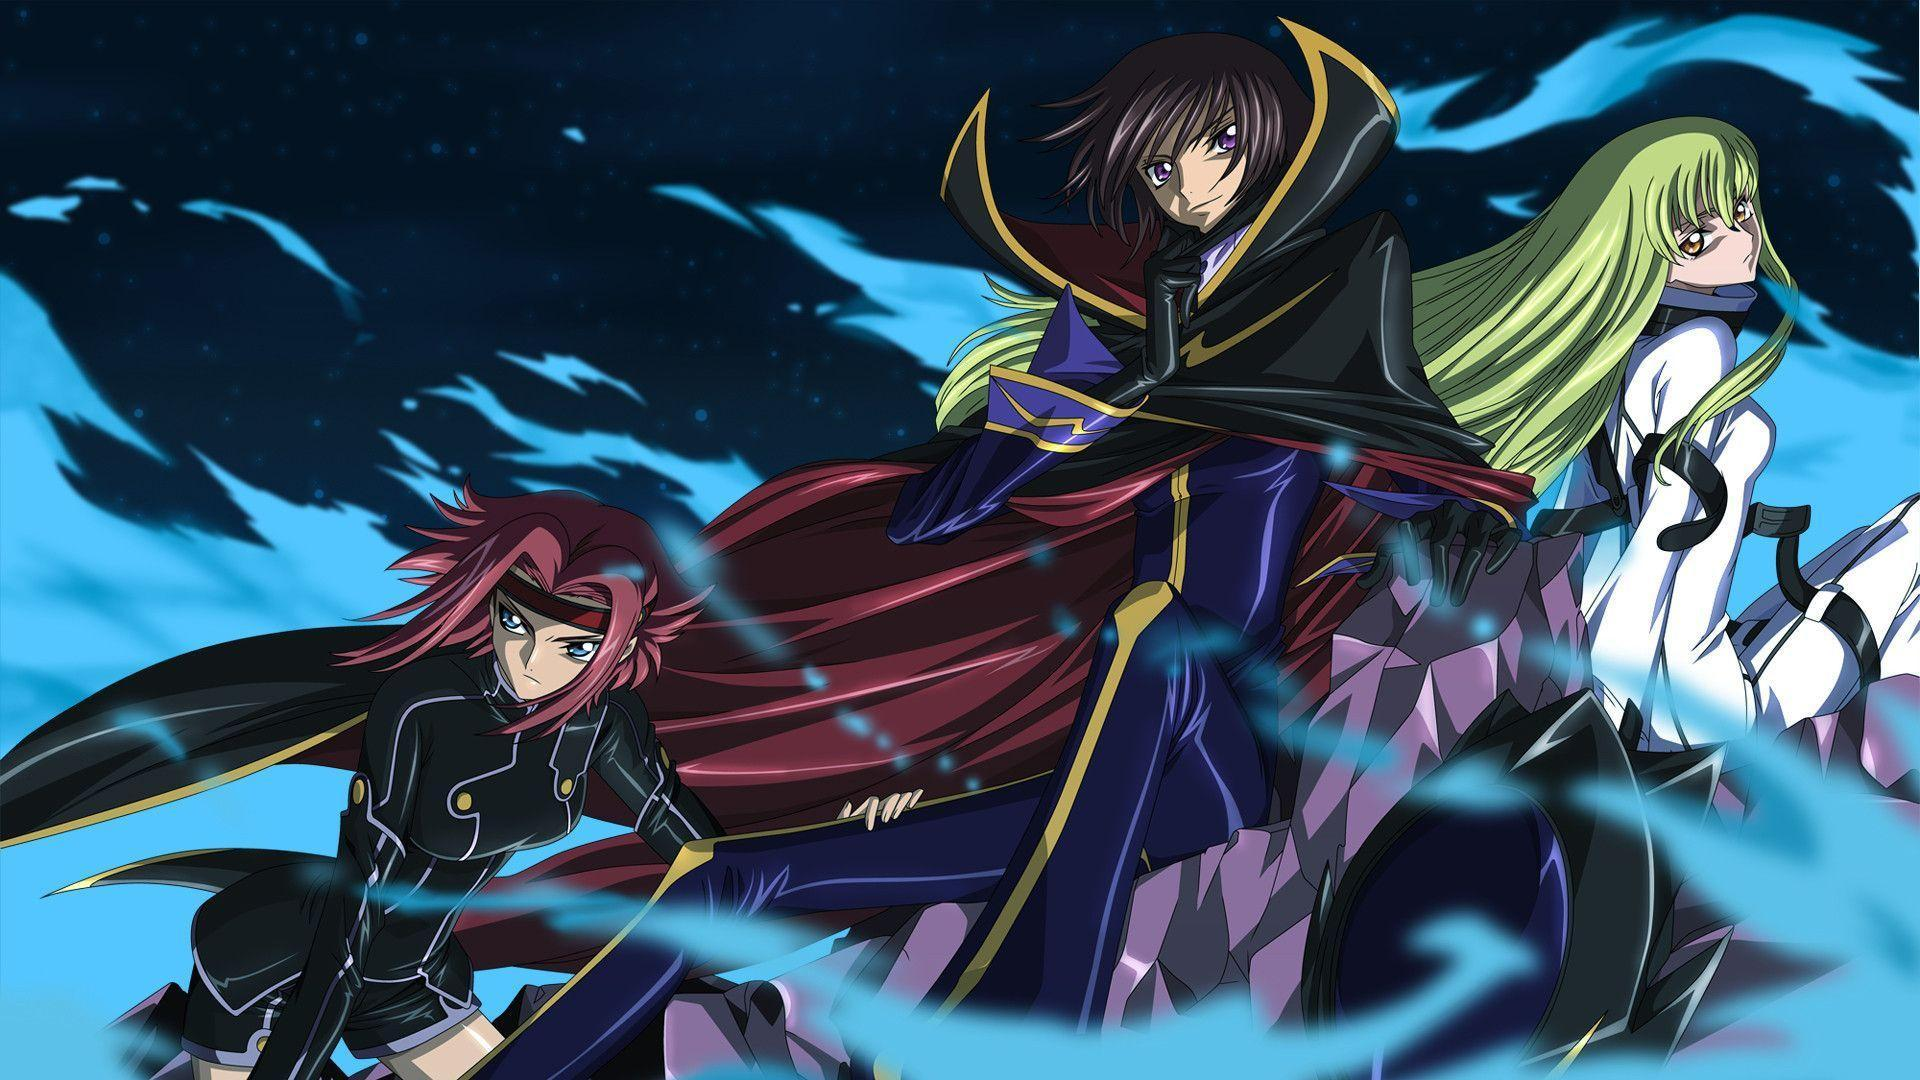 wallpaper lelouch - photo #34